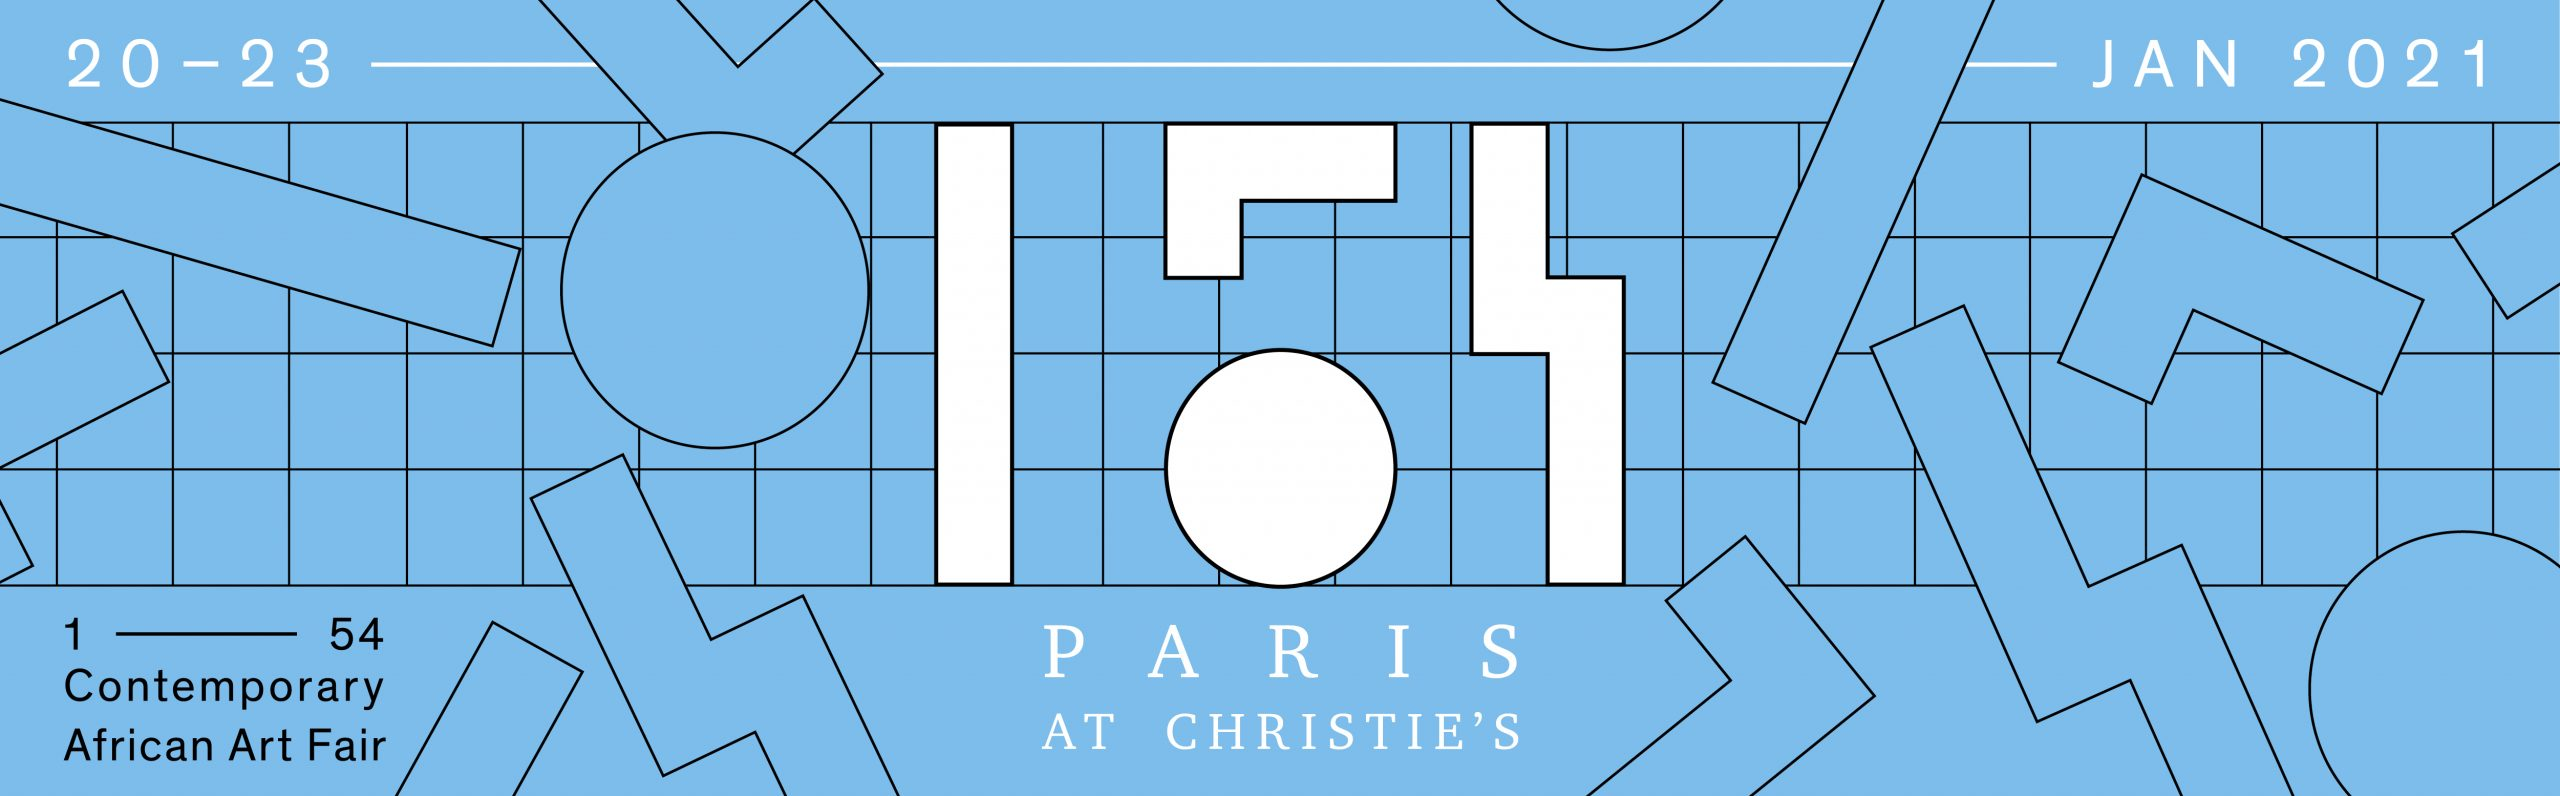 1-54 Paris at Christie's